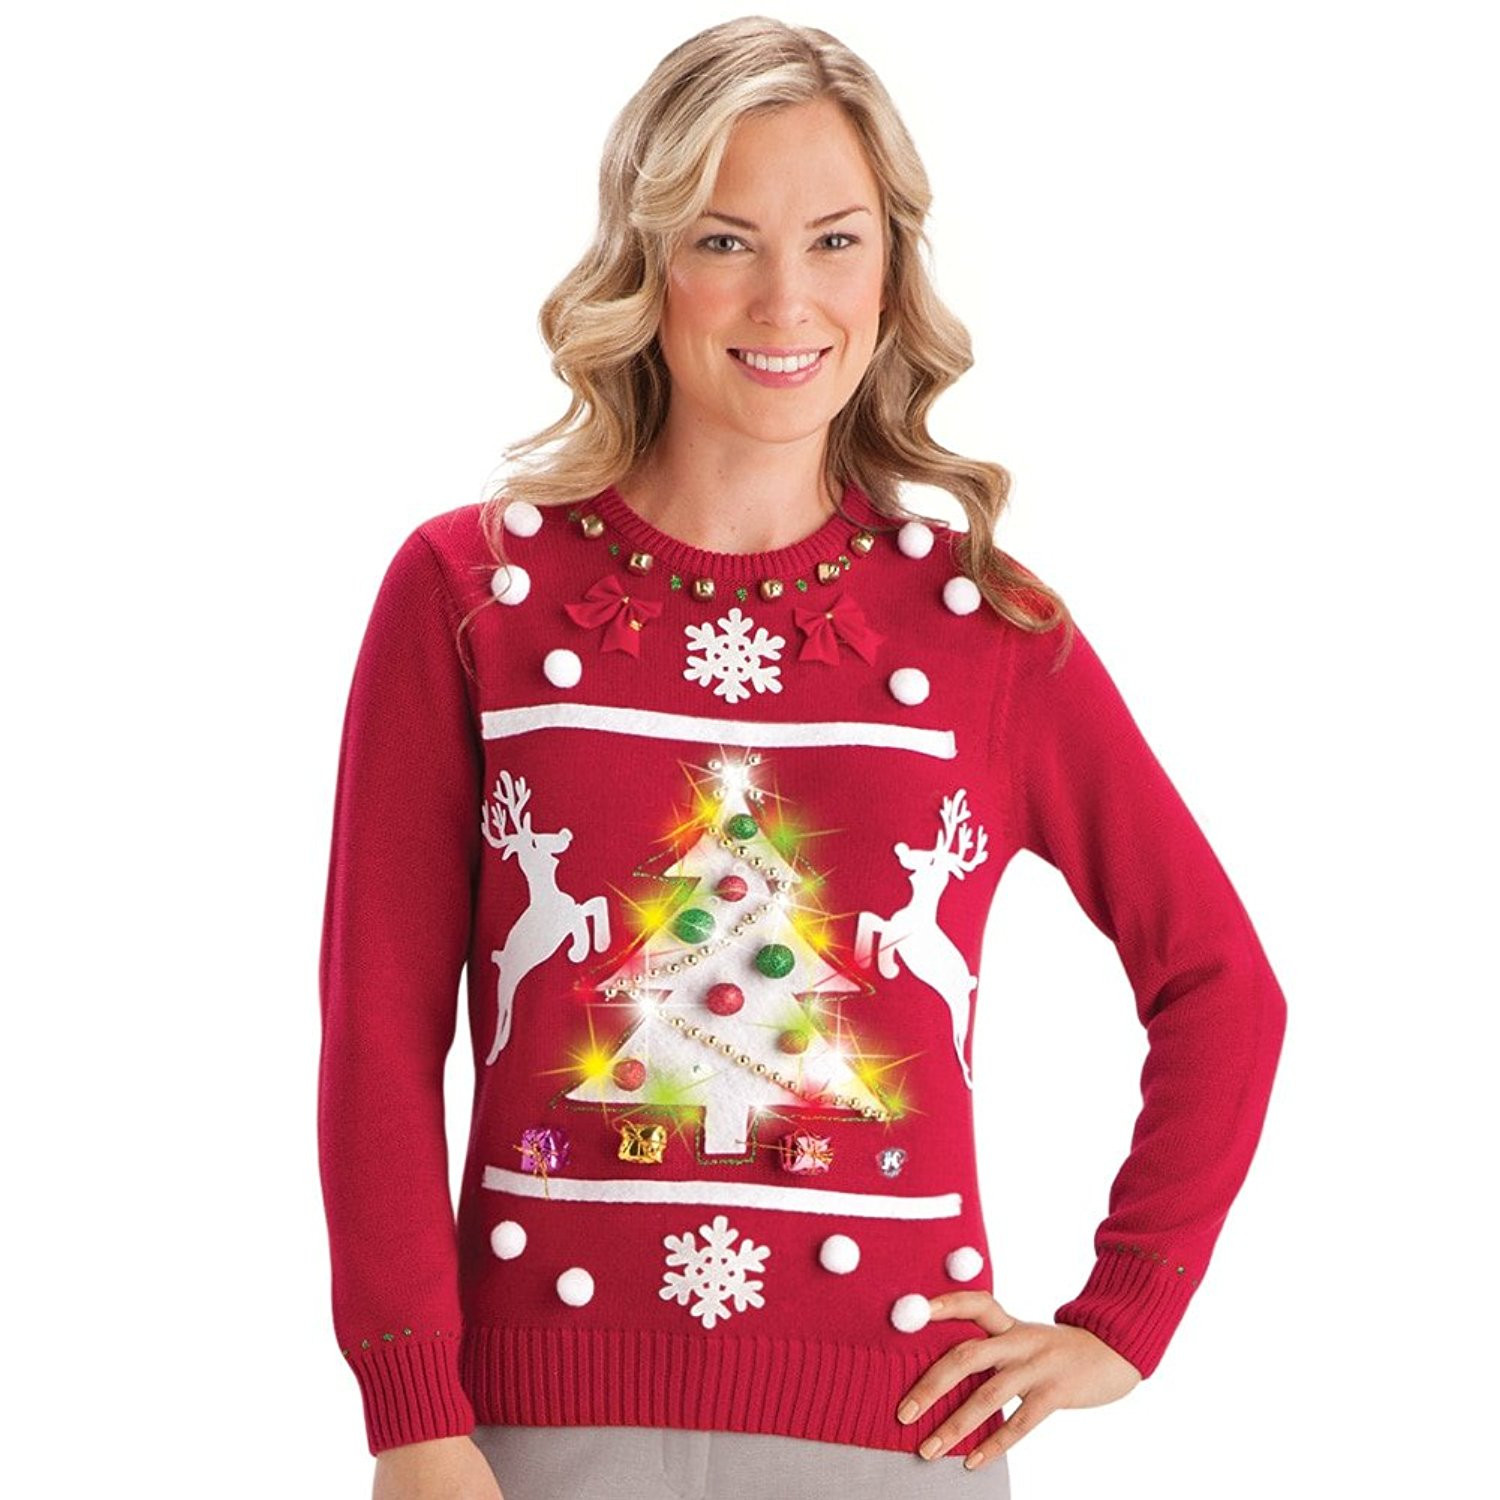 DIY Ugly Sweater Kit  DIY Ugly Christmas Sweater Kits Ugly Sweater Party Ideas